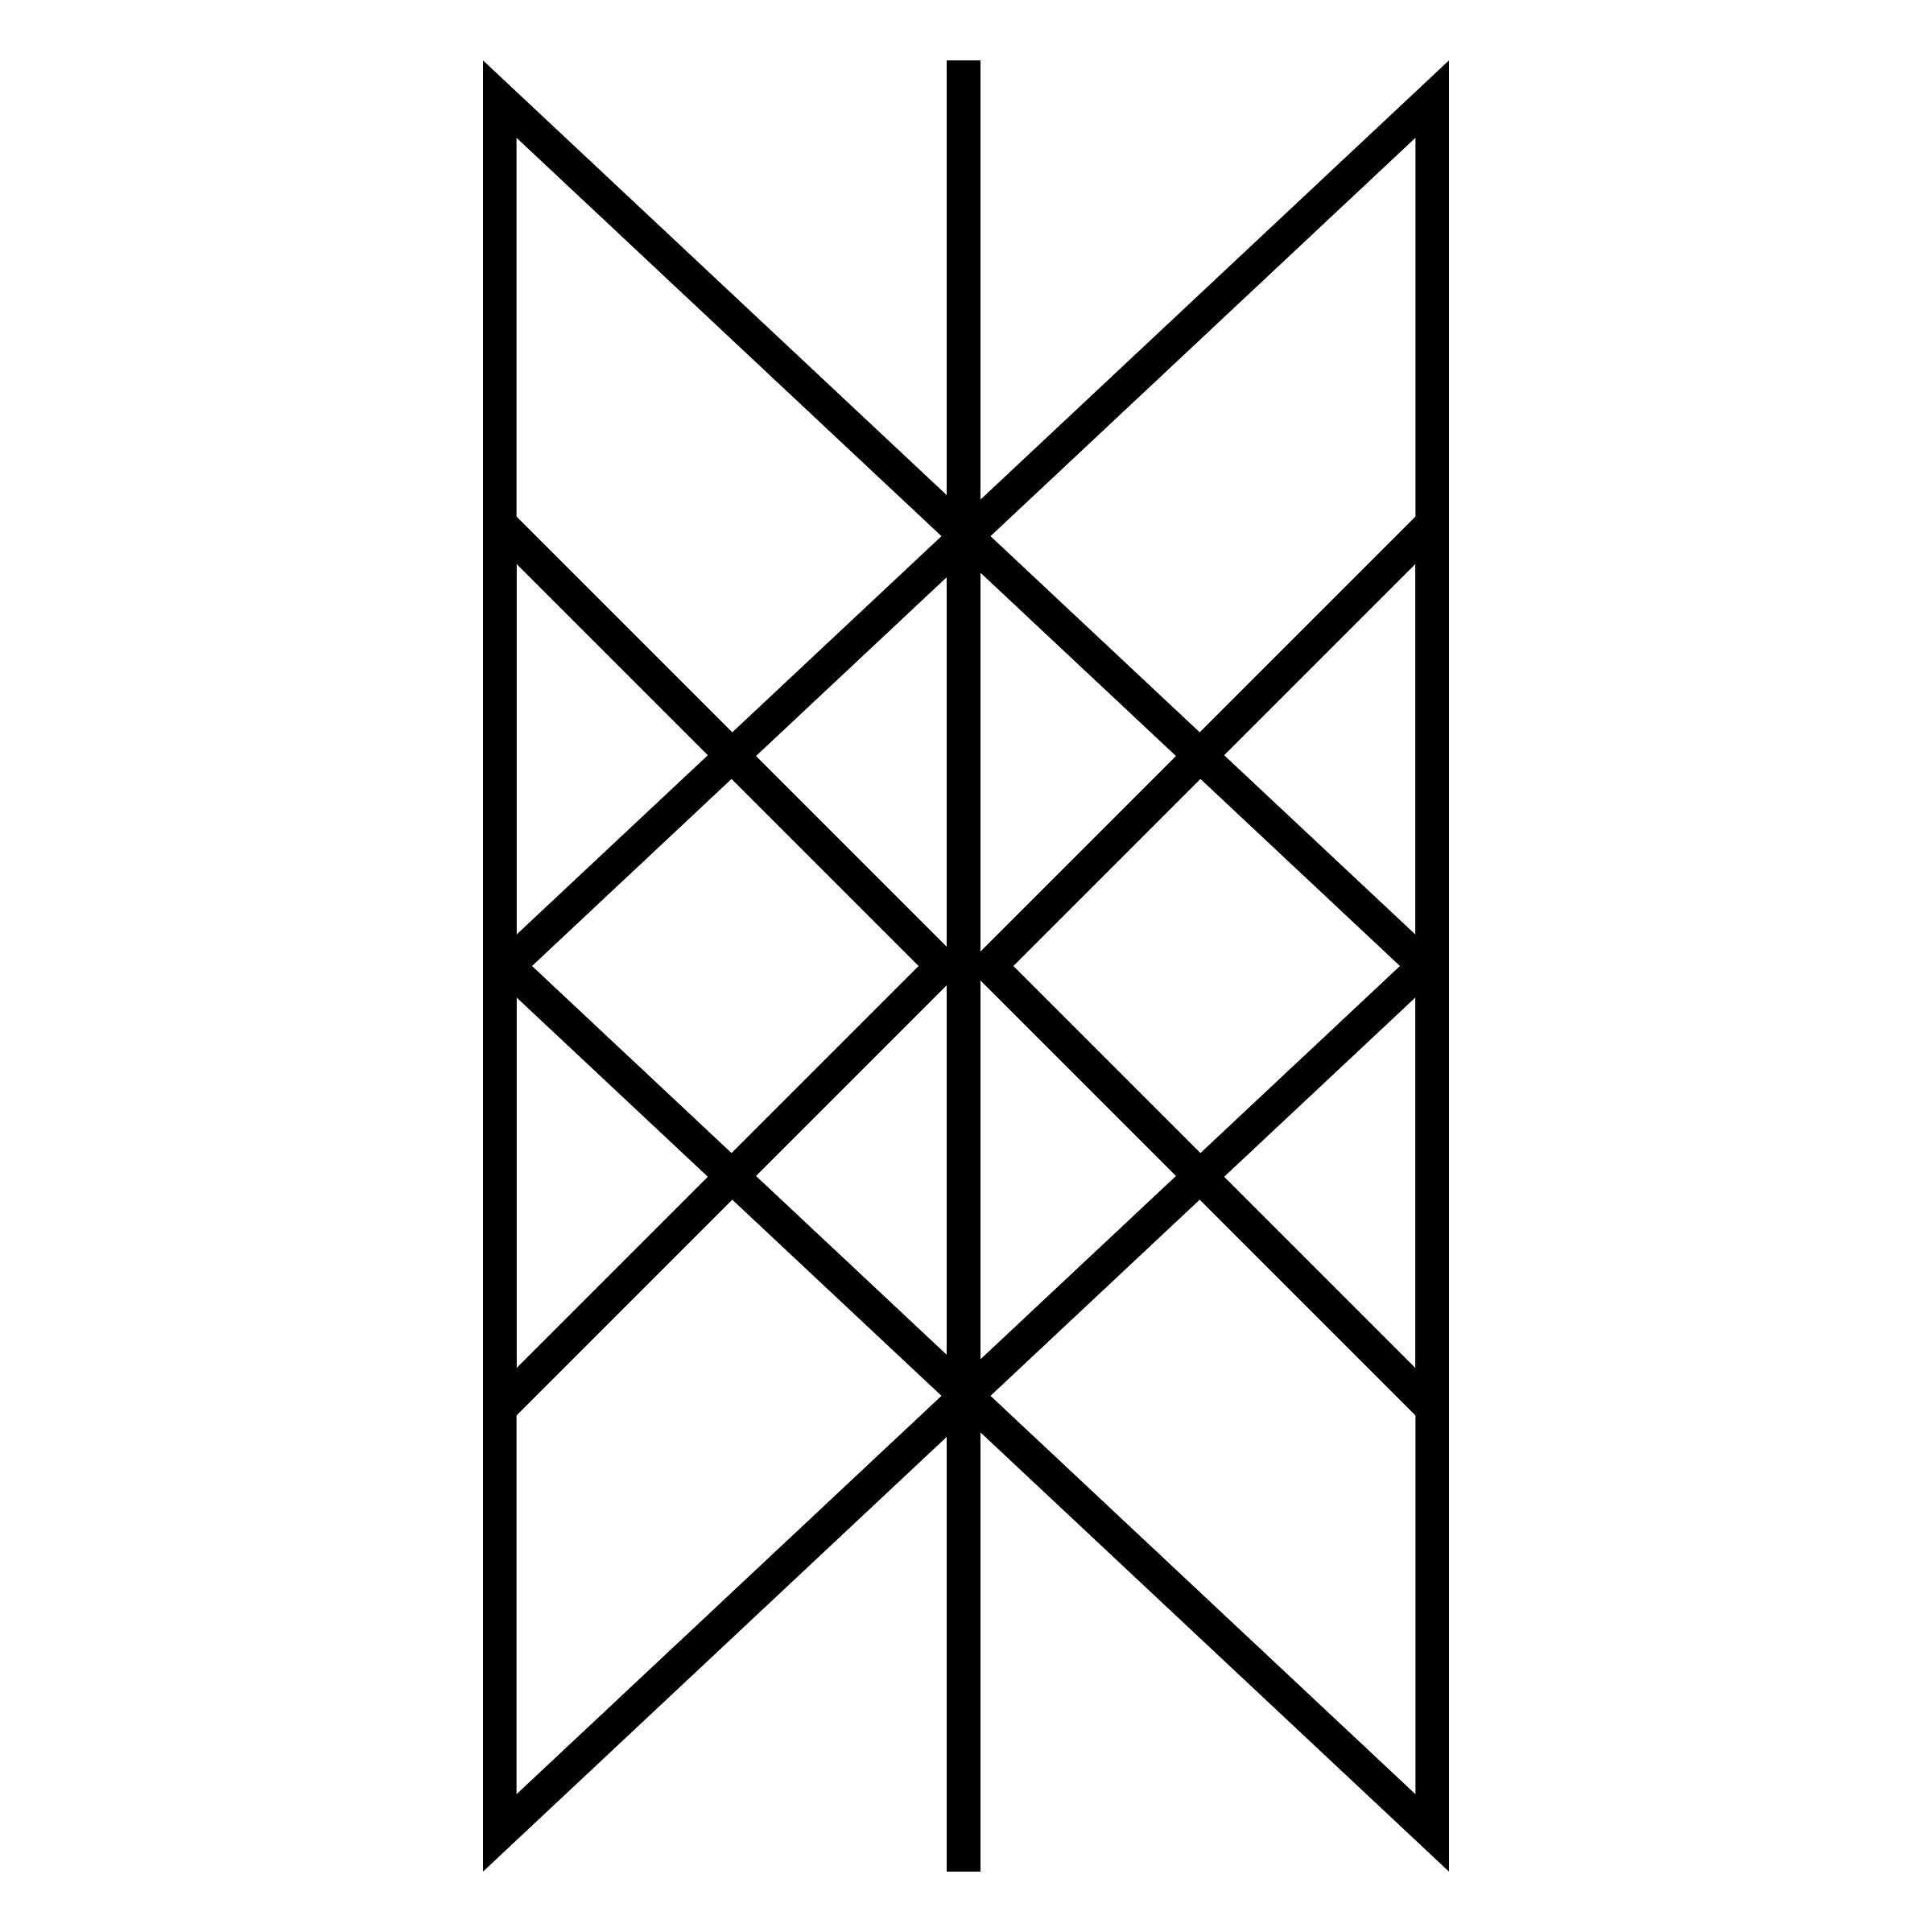 Spinning and Weaving Runes in Norse Tradition